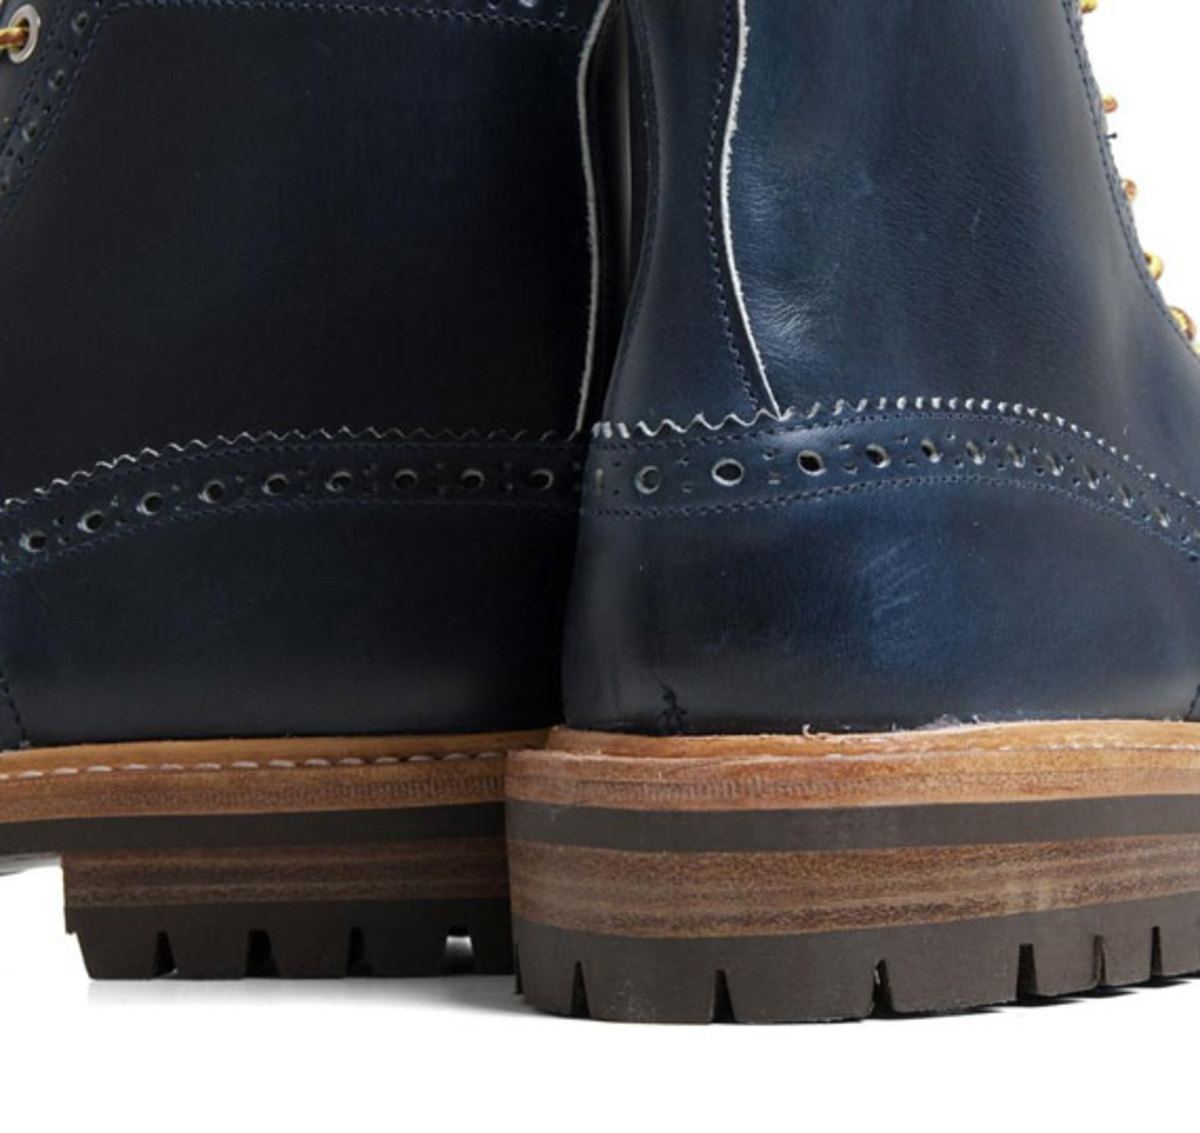 trickers-for-end-stow-brogue-derby-boot-07